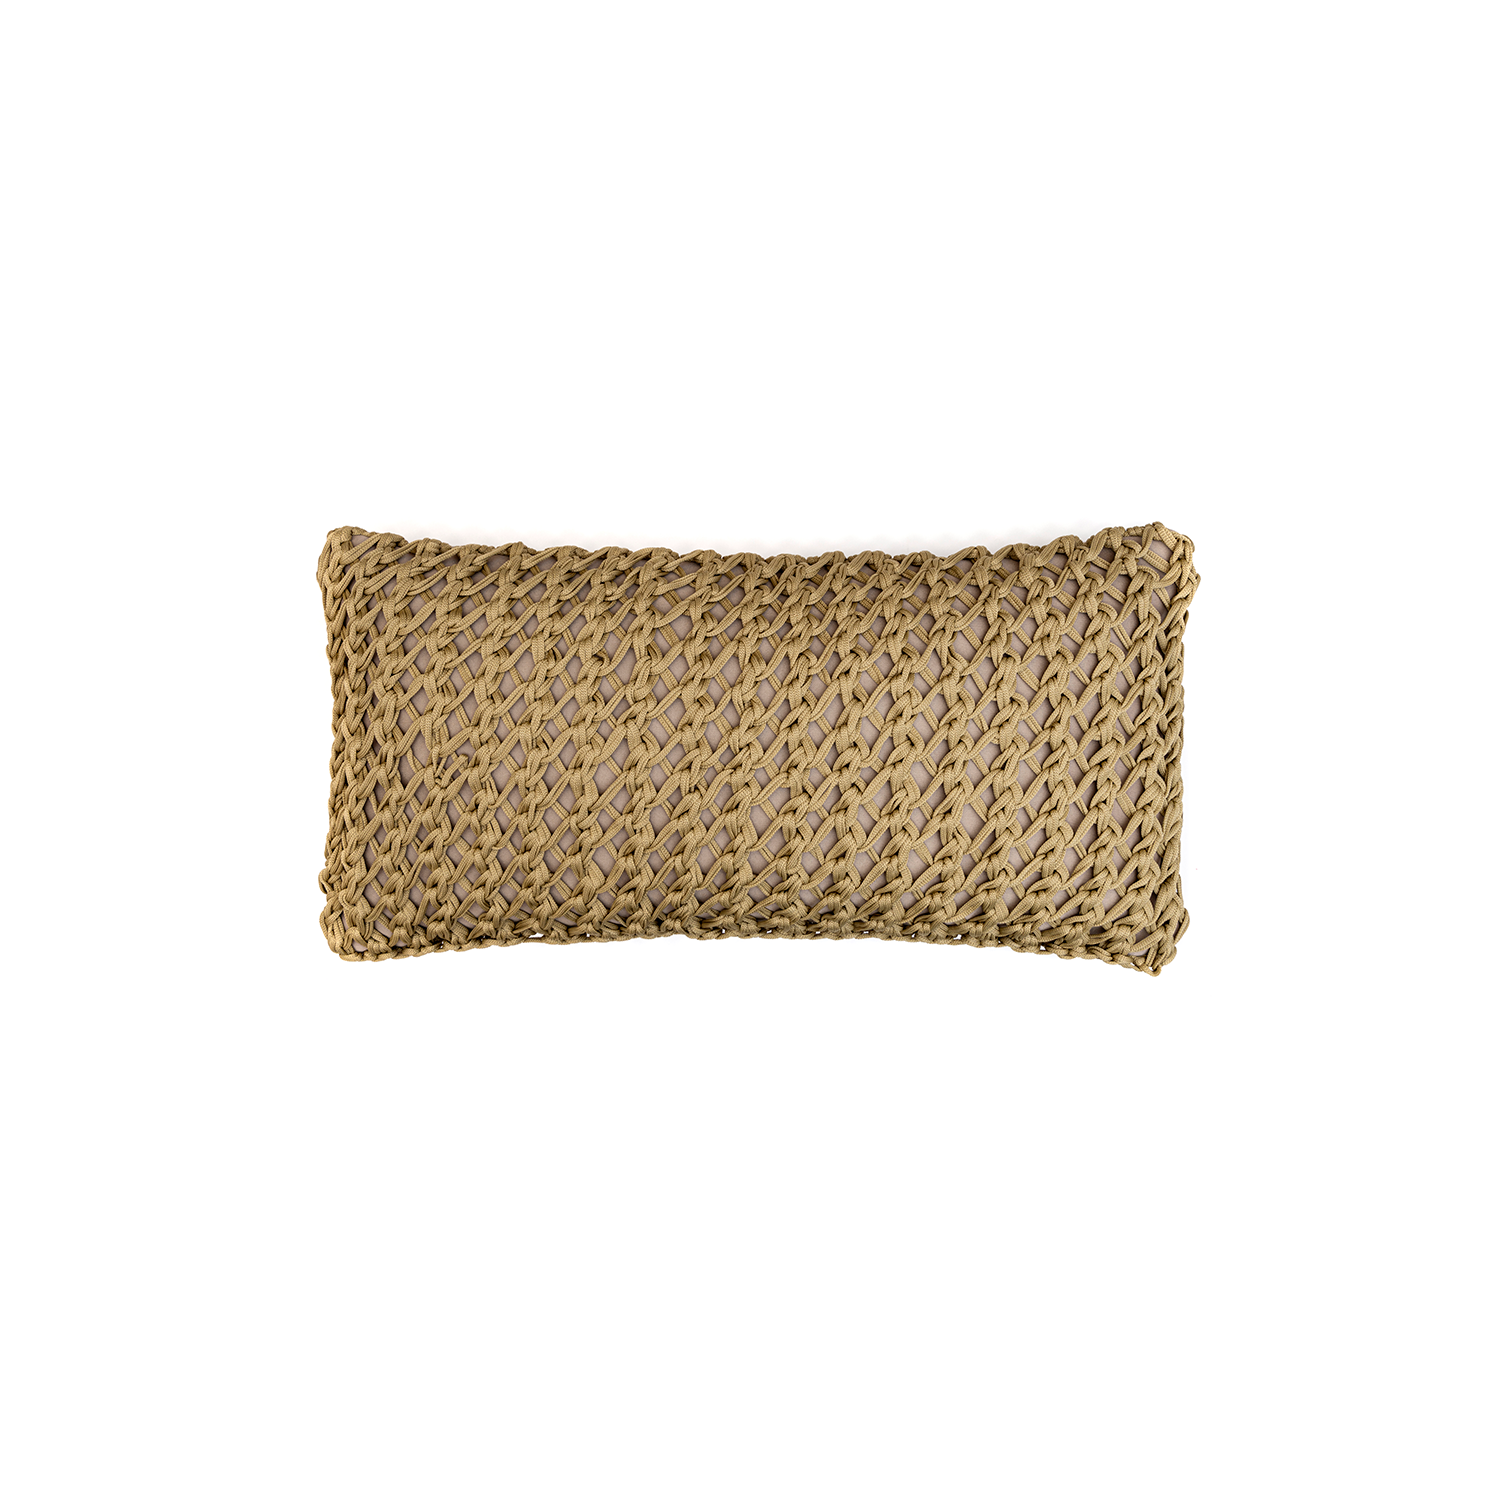 Gaia Neo Cushion Small - The Gaia Neo Cushion is carefully knitted within a trained community of women that found in their craft a way to provide for their families. The outdoor collection is made with synthetic fibres, resistant to weather exposure. The use of neoprene brings comfort and technology to the cushions.  The front panel is in neoprene combined with hand woven nautical cord, made in Brazil.  The inner cushion is in Hollow Fibre, made in the UK.  Please enquire for more information and see colour chart for reference.  | Matter of Stuff